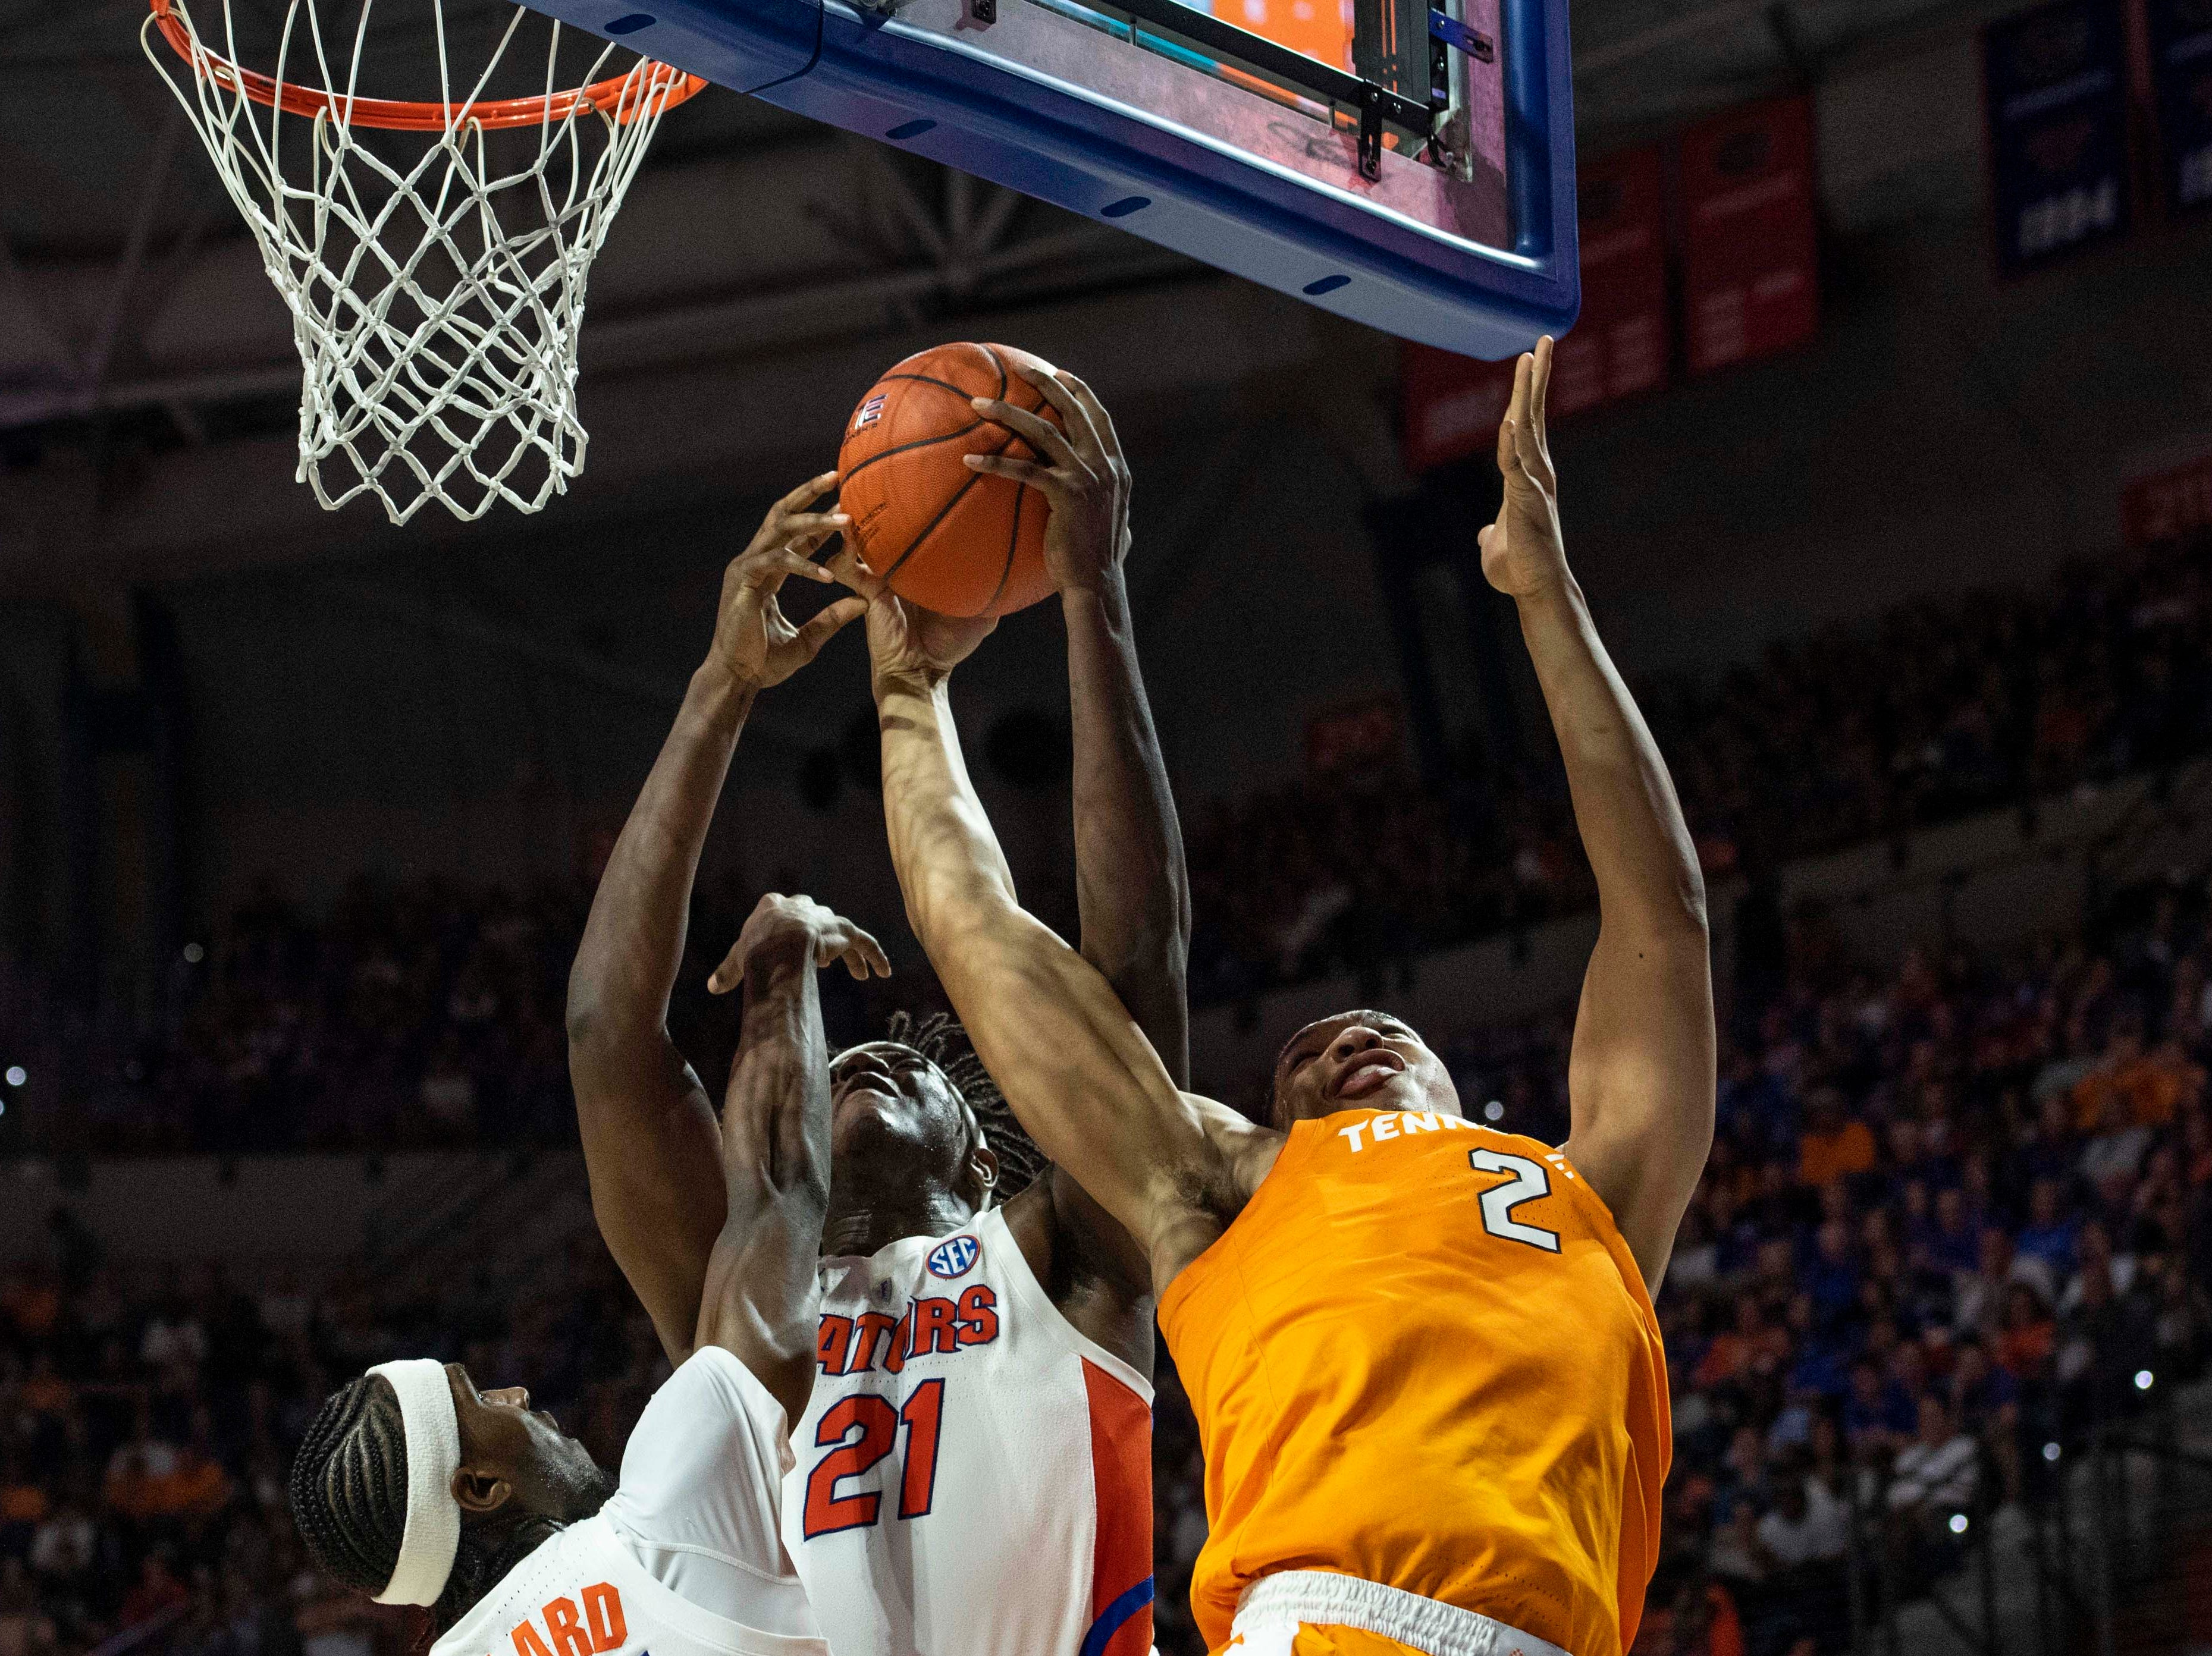 Tennessee Volunteers forward Grant Williams (2) and Florida Gators forward Dontay Bassett (21) and guard Deaundrae Ballard (24) fight for a rebound on Jan. 12, 2019.